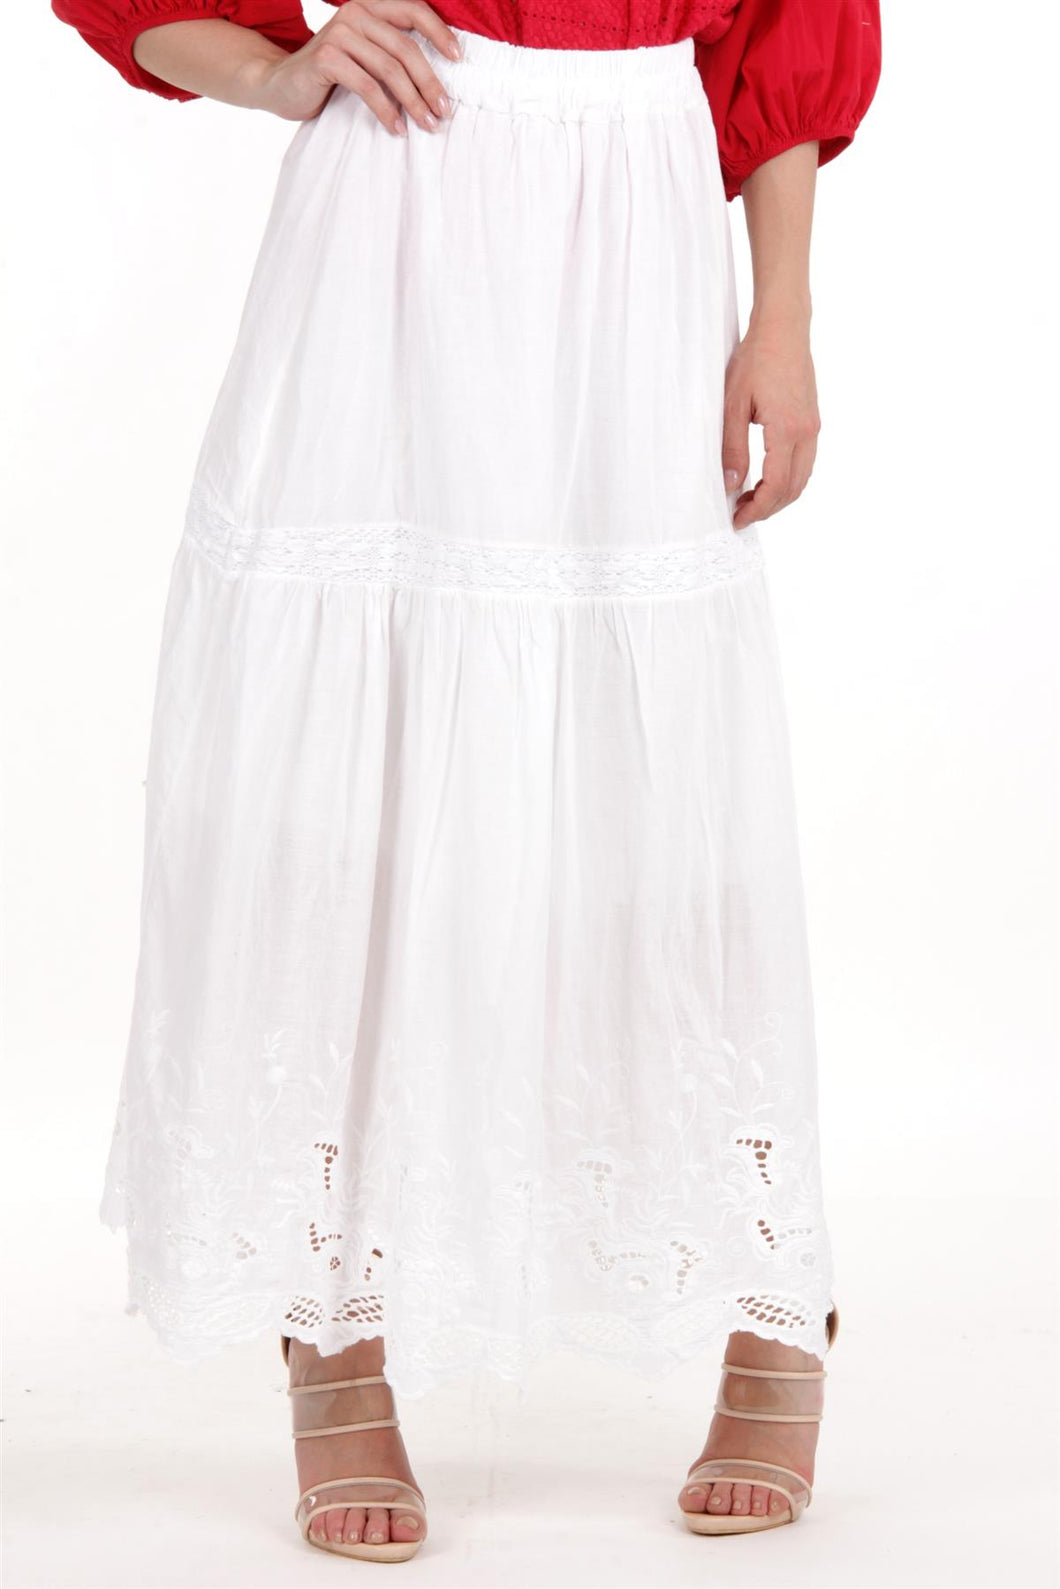 White Lace Maxi Skirt II